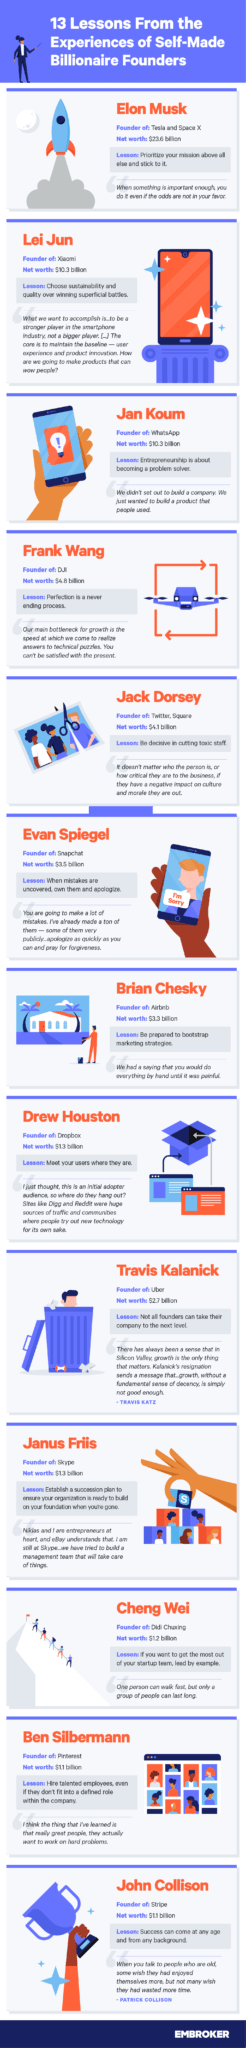 Infographic for 13 Lessons From the Experiences of Self-Made Billionaire Founders